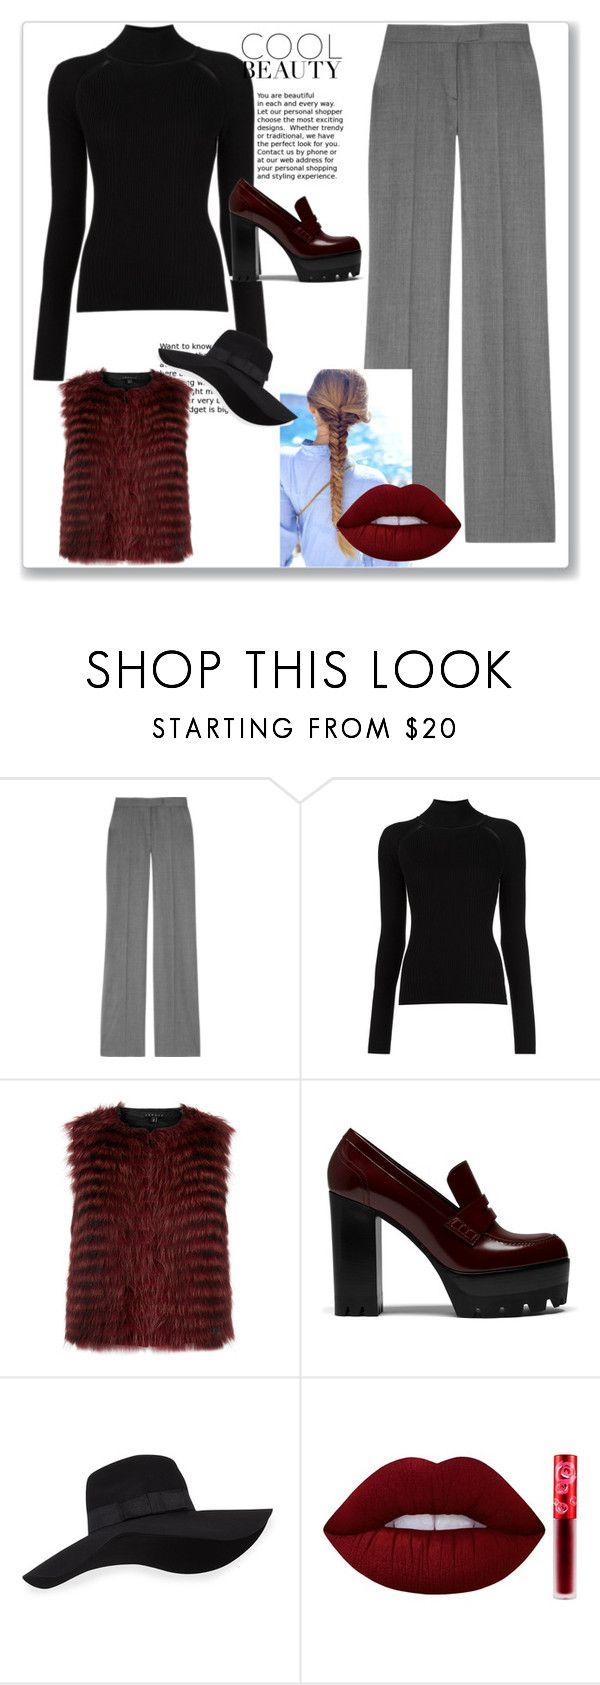 """Черная водолазка 5"" by izolda06 on Polyvore featuring мода, STELLA McCARTNEY, Misha Nonoo, Theory, Mulberry, San Diego Hat Co. и Lime Crime"